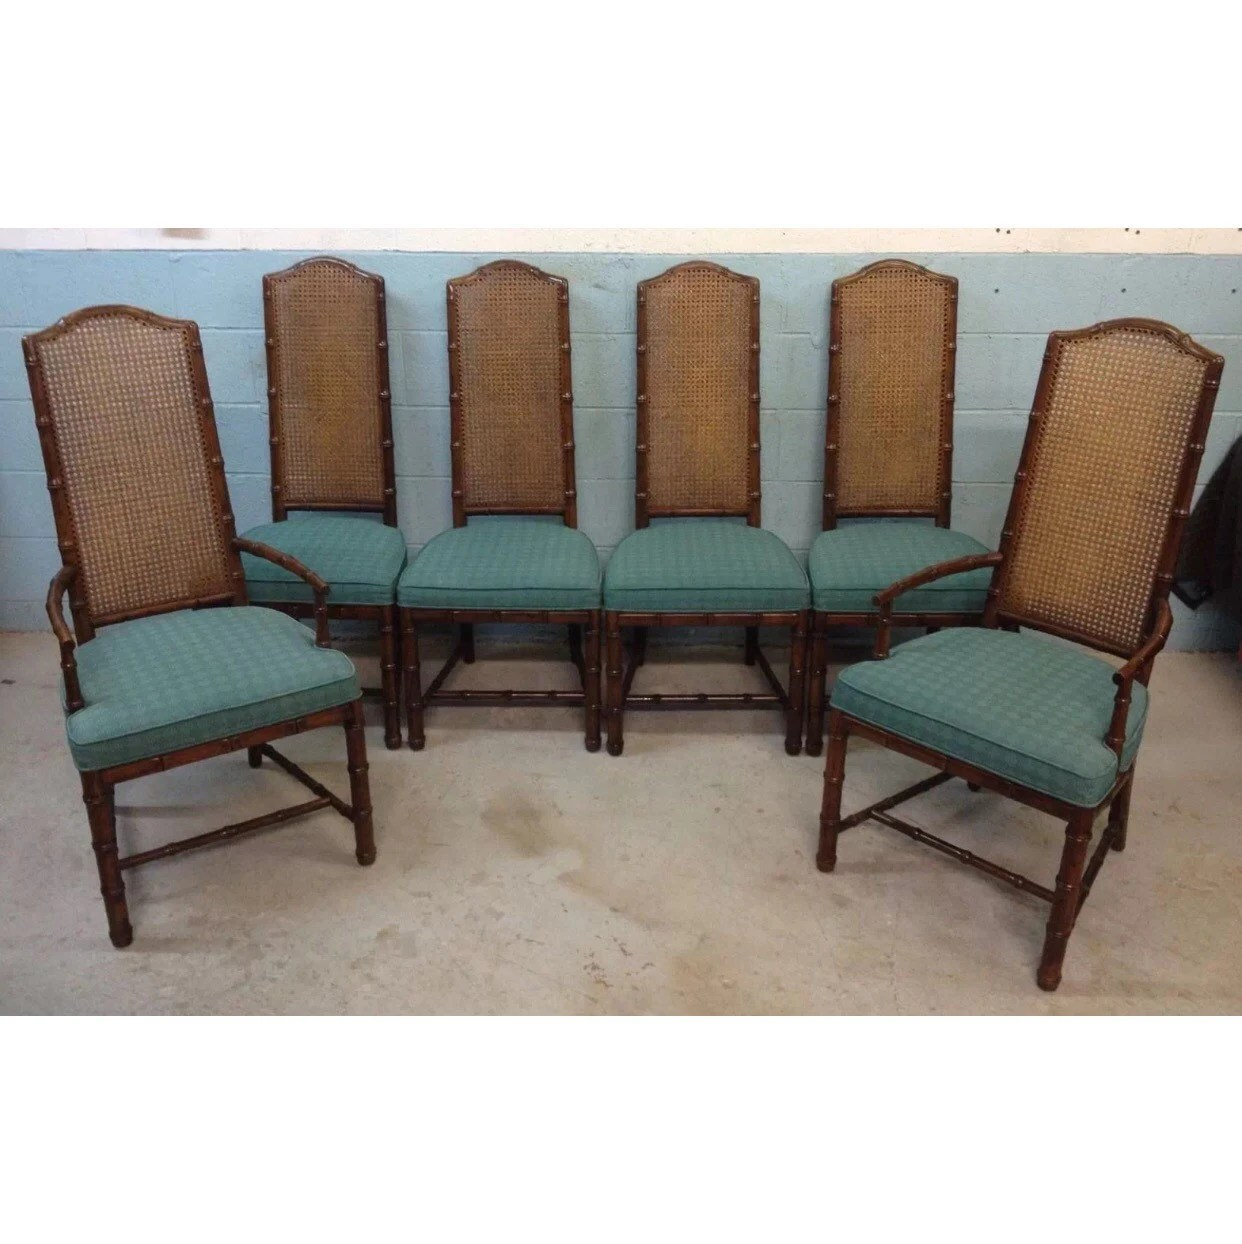 Vintage Cane Back Chairs Henredon Vintage Faux Bamboo Cane Back Dining Chairs By